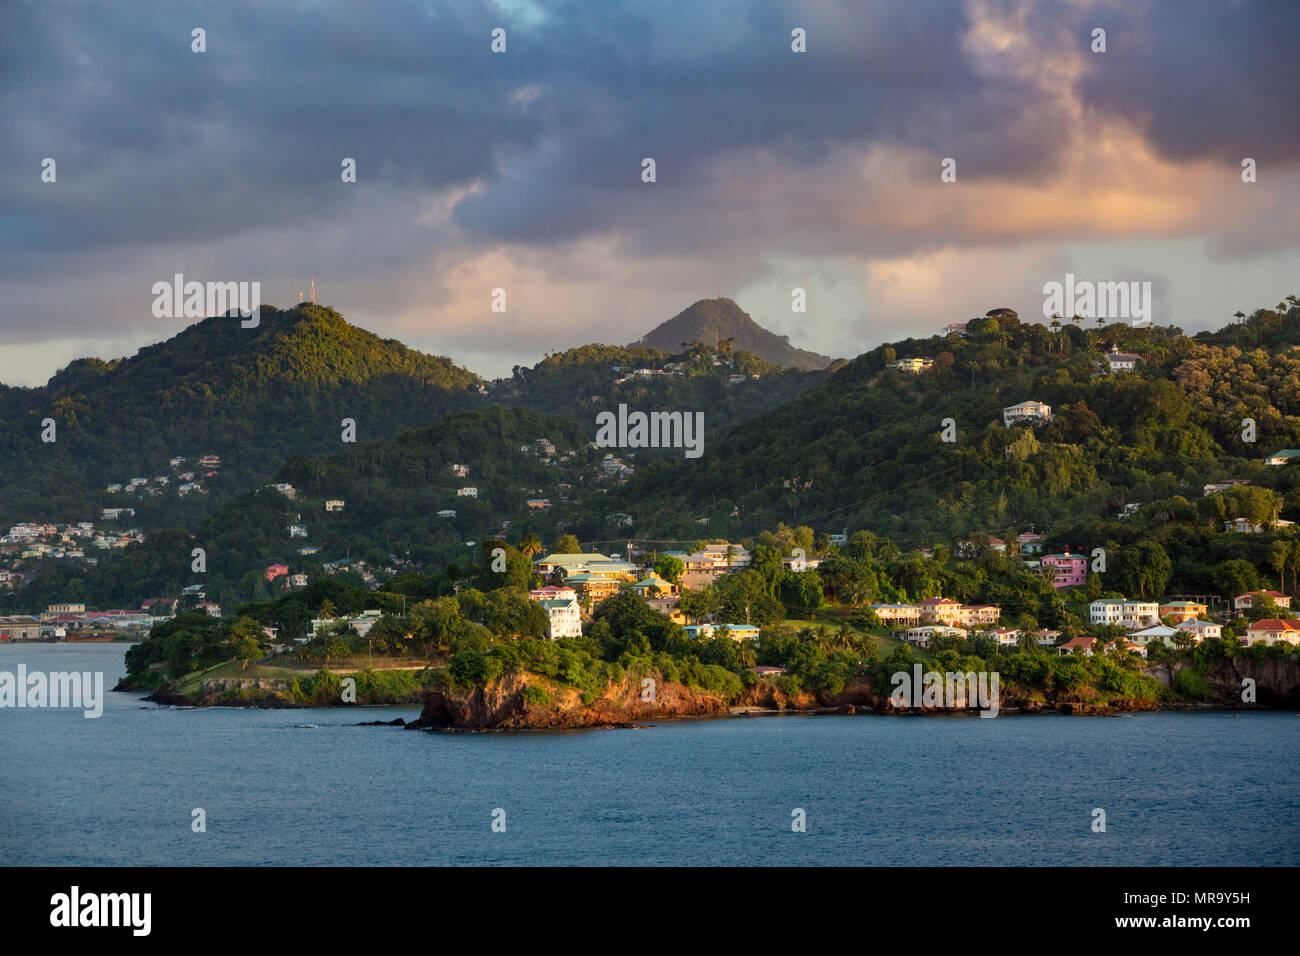 Evening sunlight over the tropical island of St Lucia, West Indies - Stock Image